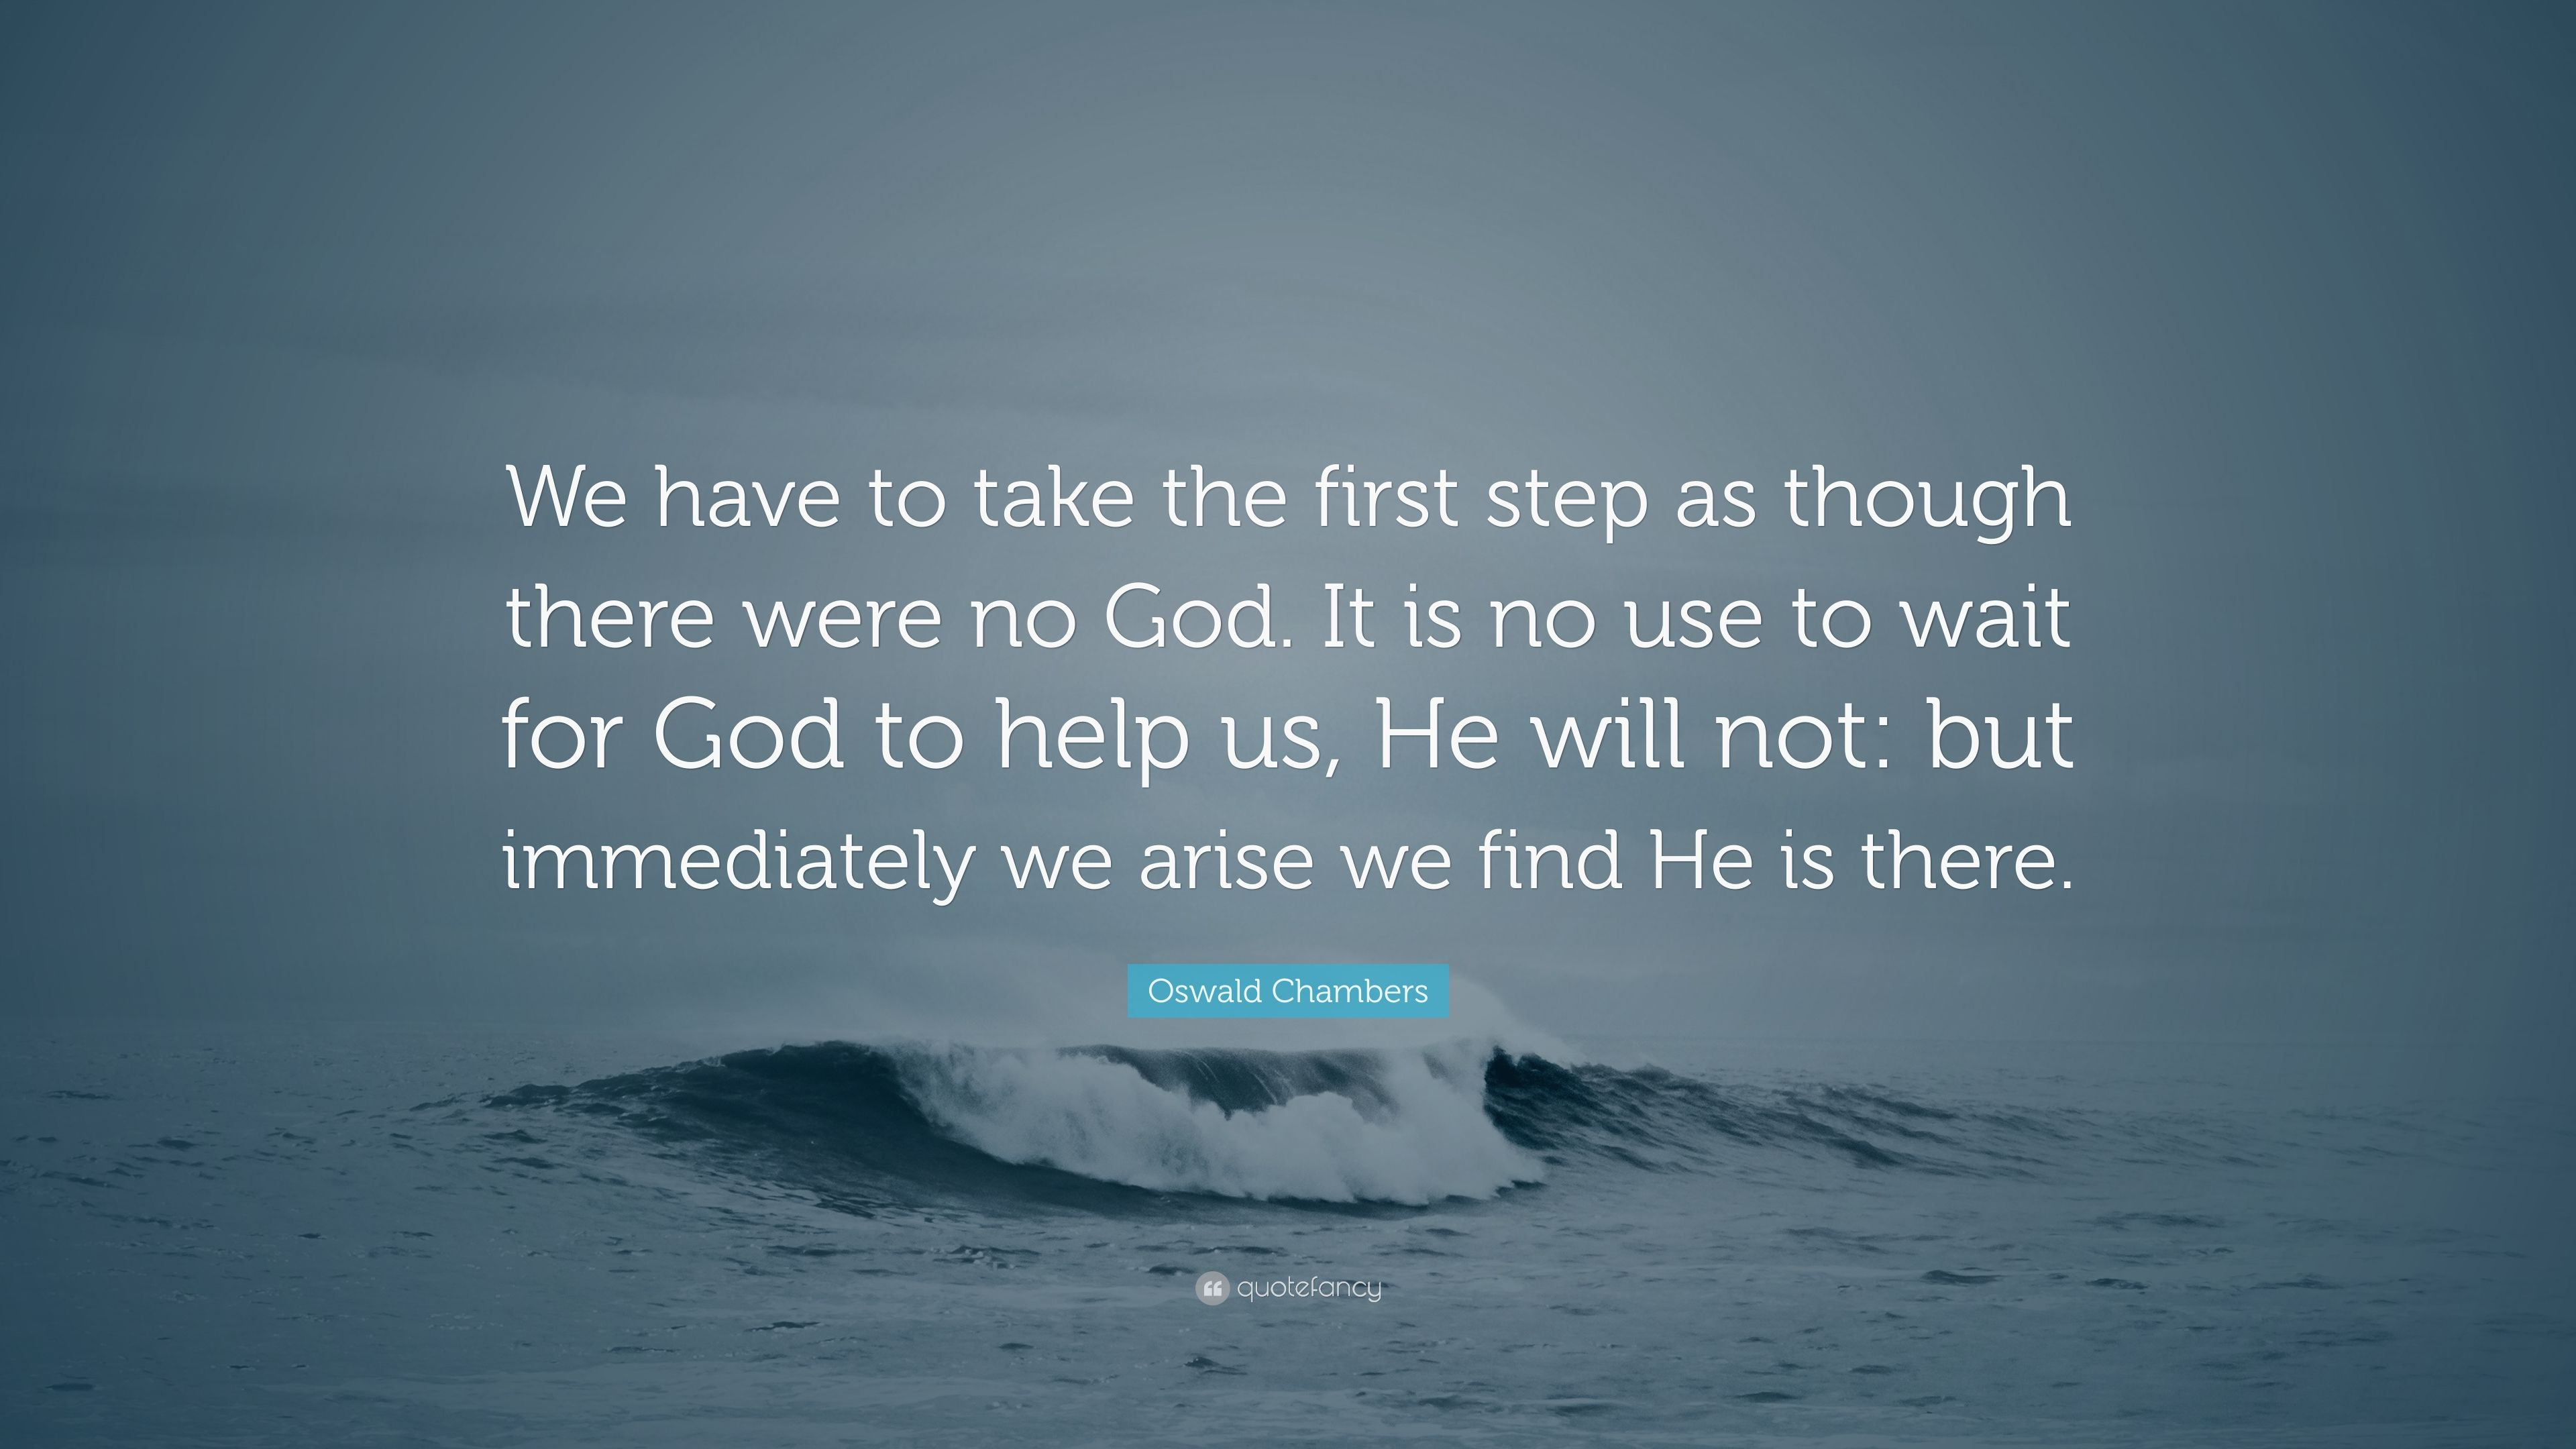 Why does not he take the first step